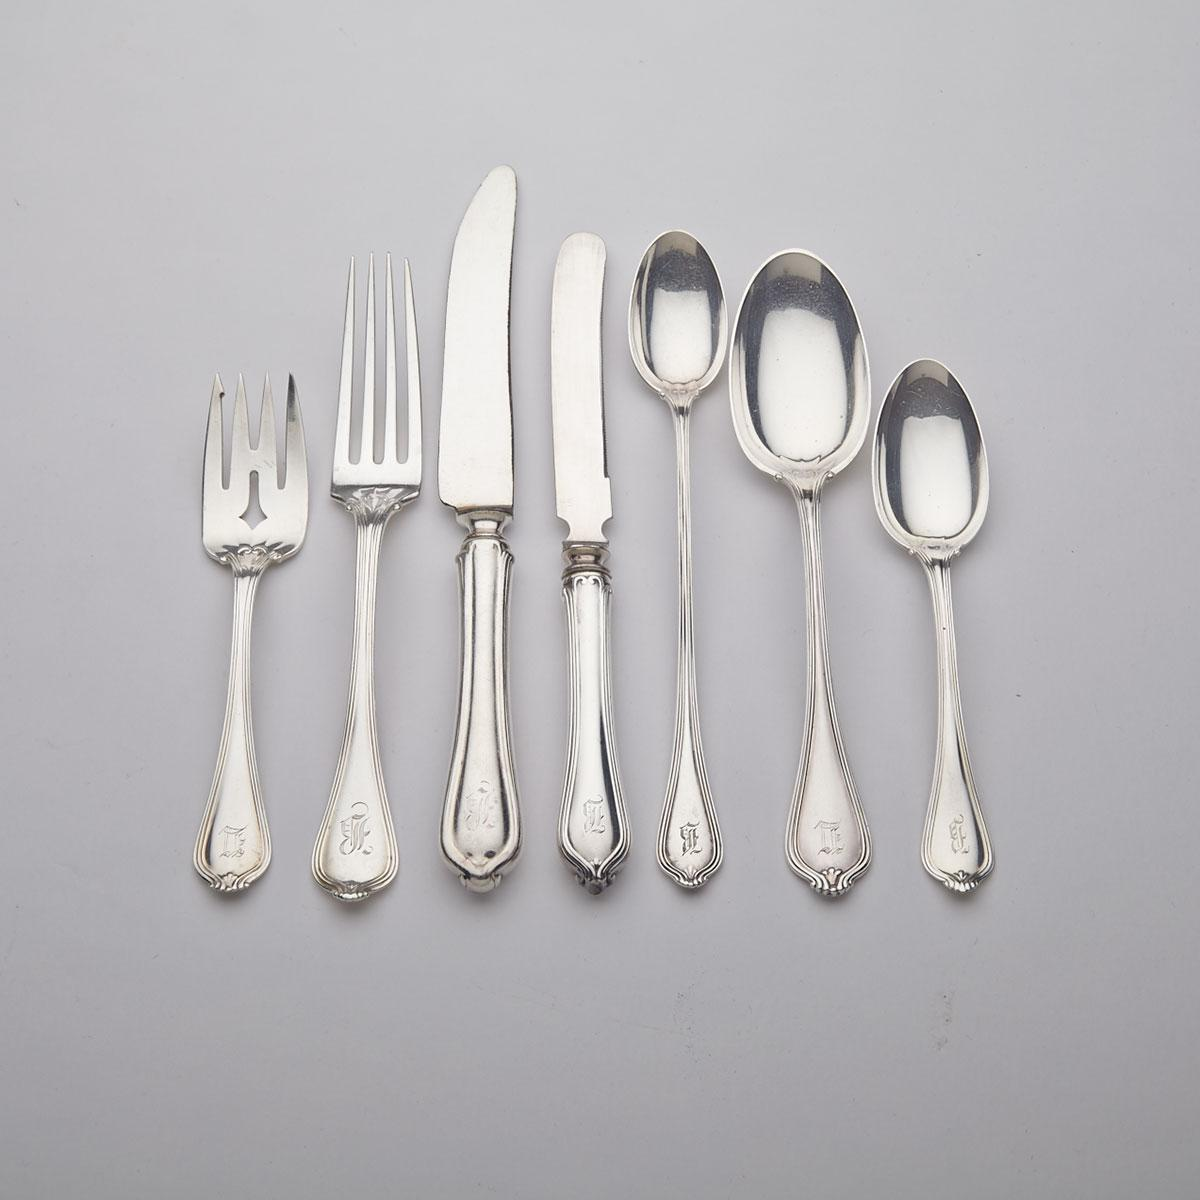 American Silver 'Paul Revere' Pattern Flatware Service, Towle Silversmiths, Newburyport, Mass., early 20th century